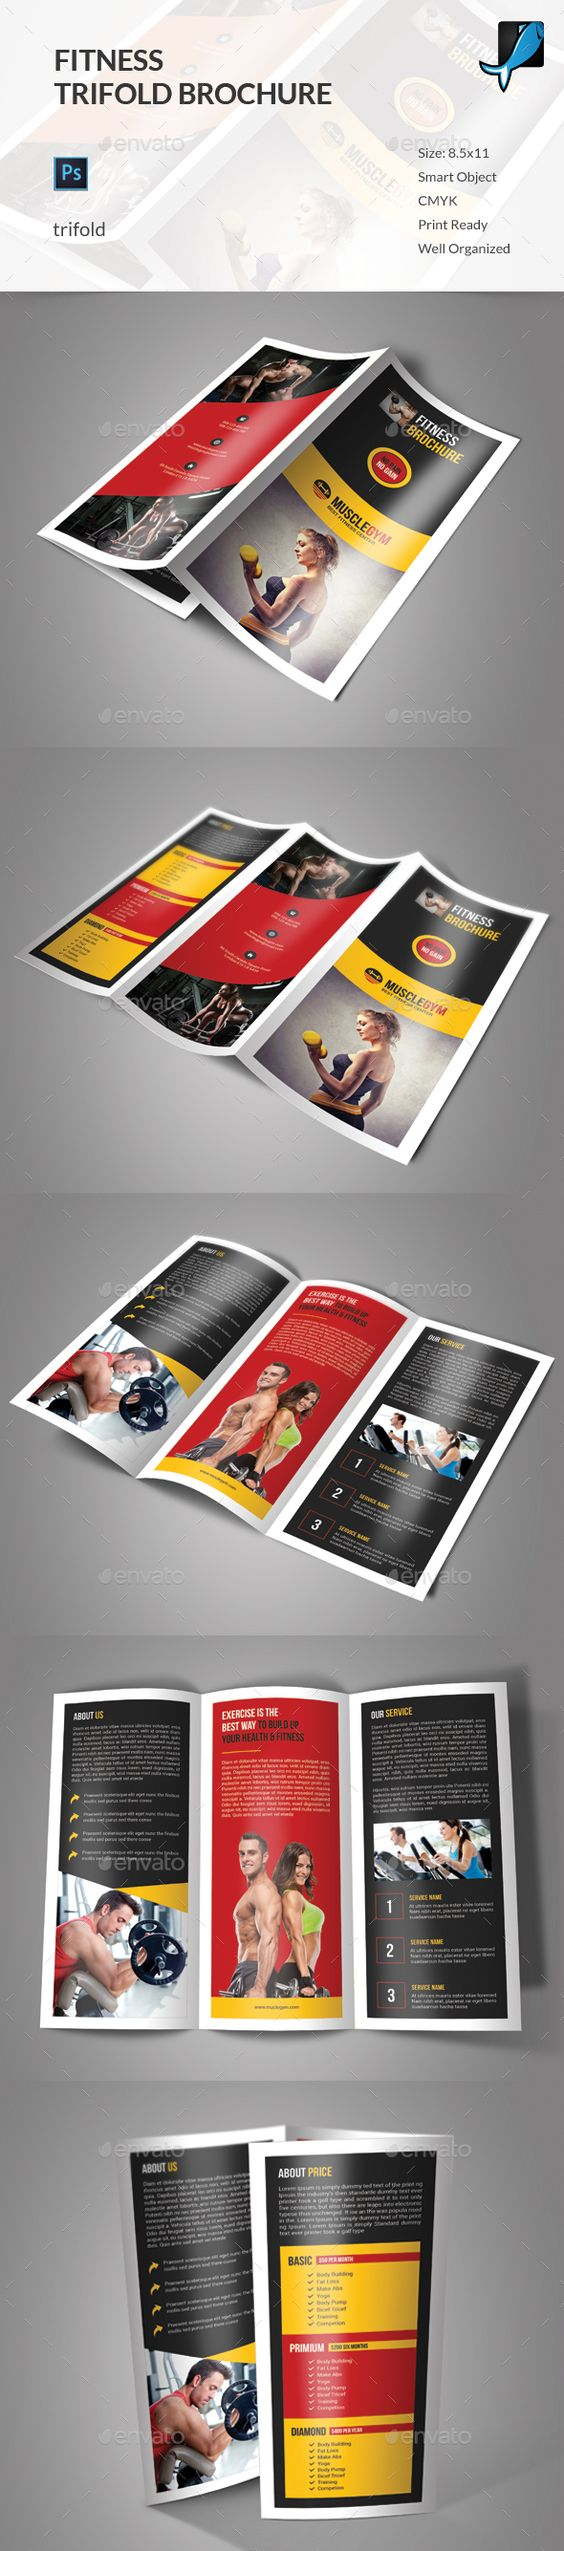 Fitness Trifold Brochure  Fitness Brochure Template And Templates